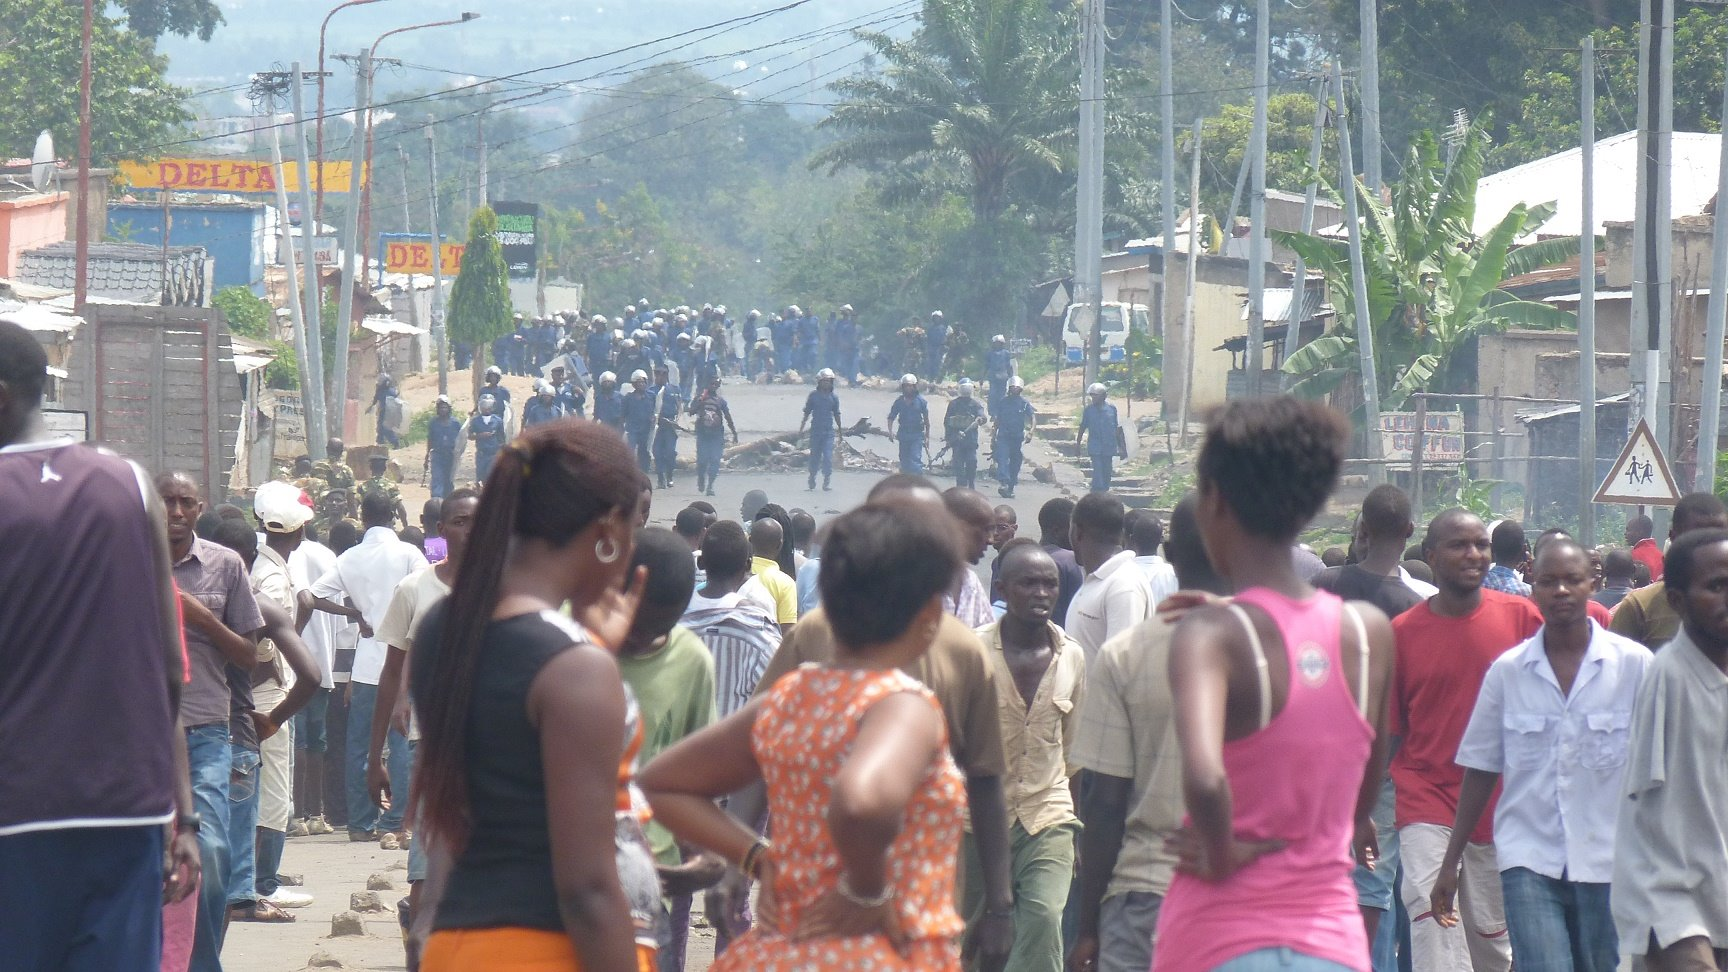 Police look on as people demonstrate in Bujumbura against a decision by Burundi's ruling party to nominate President Pierre Nkurunziza to run for a third term in elections slated for June  2015.